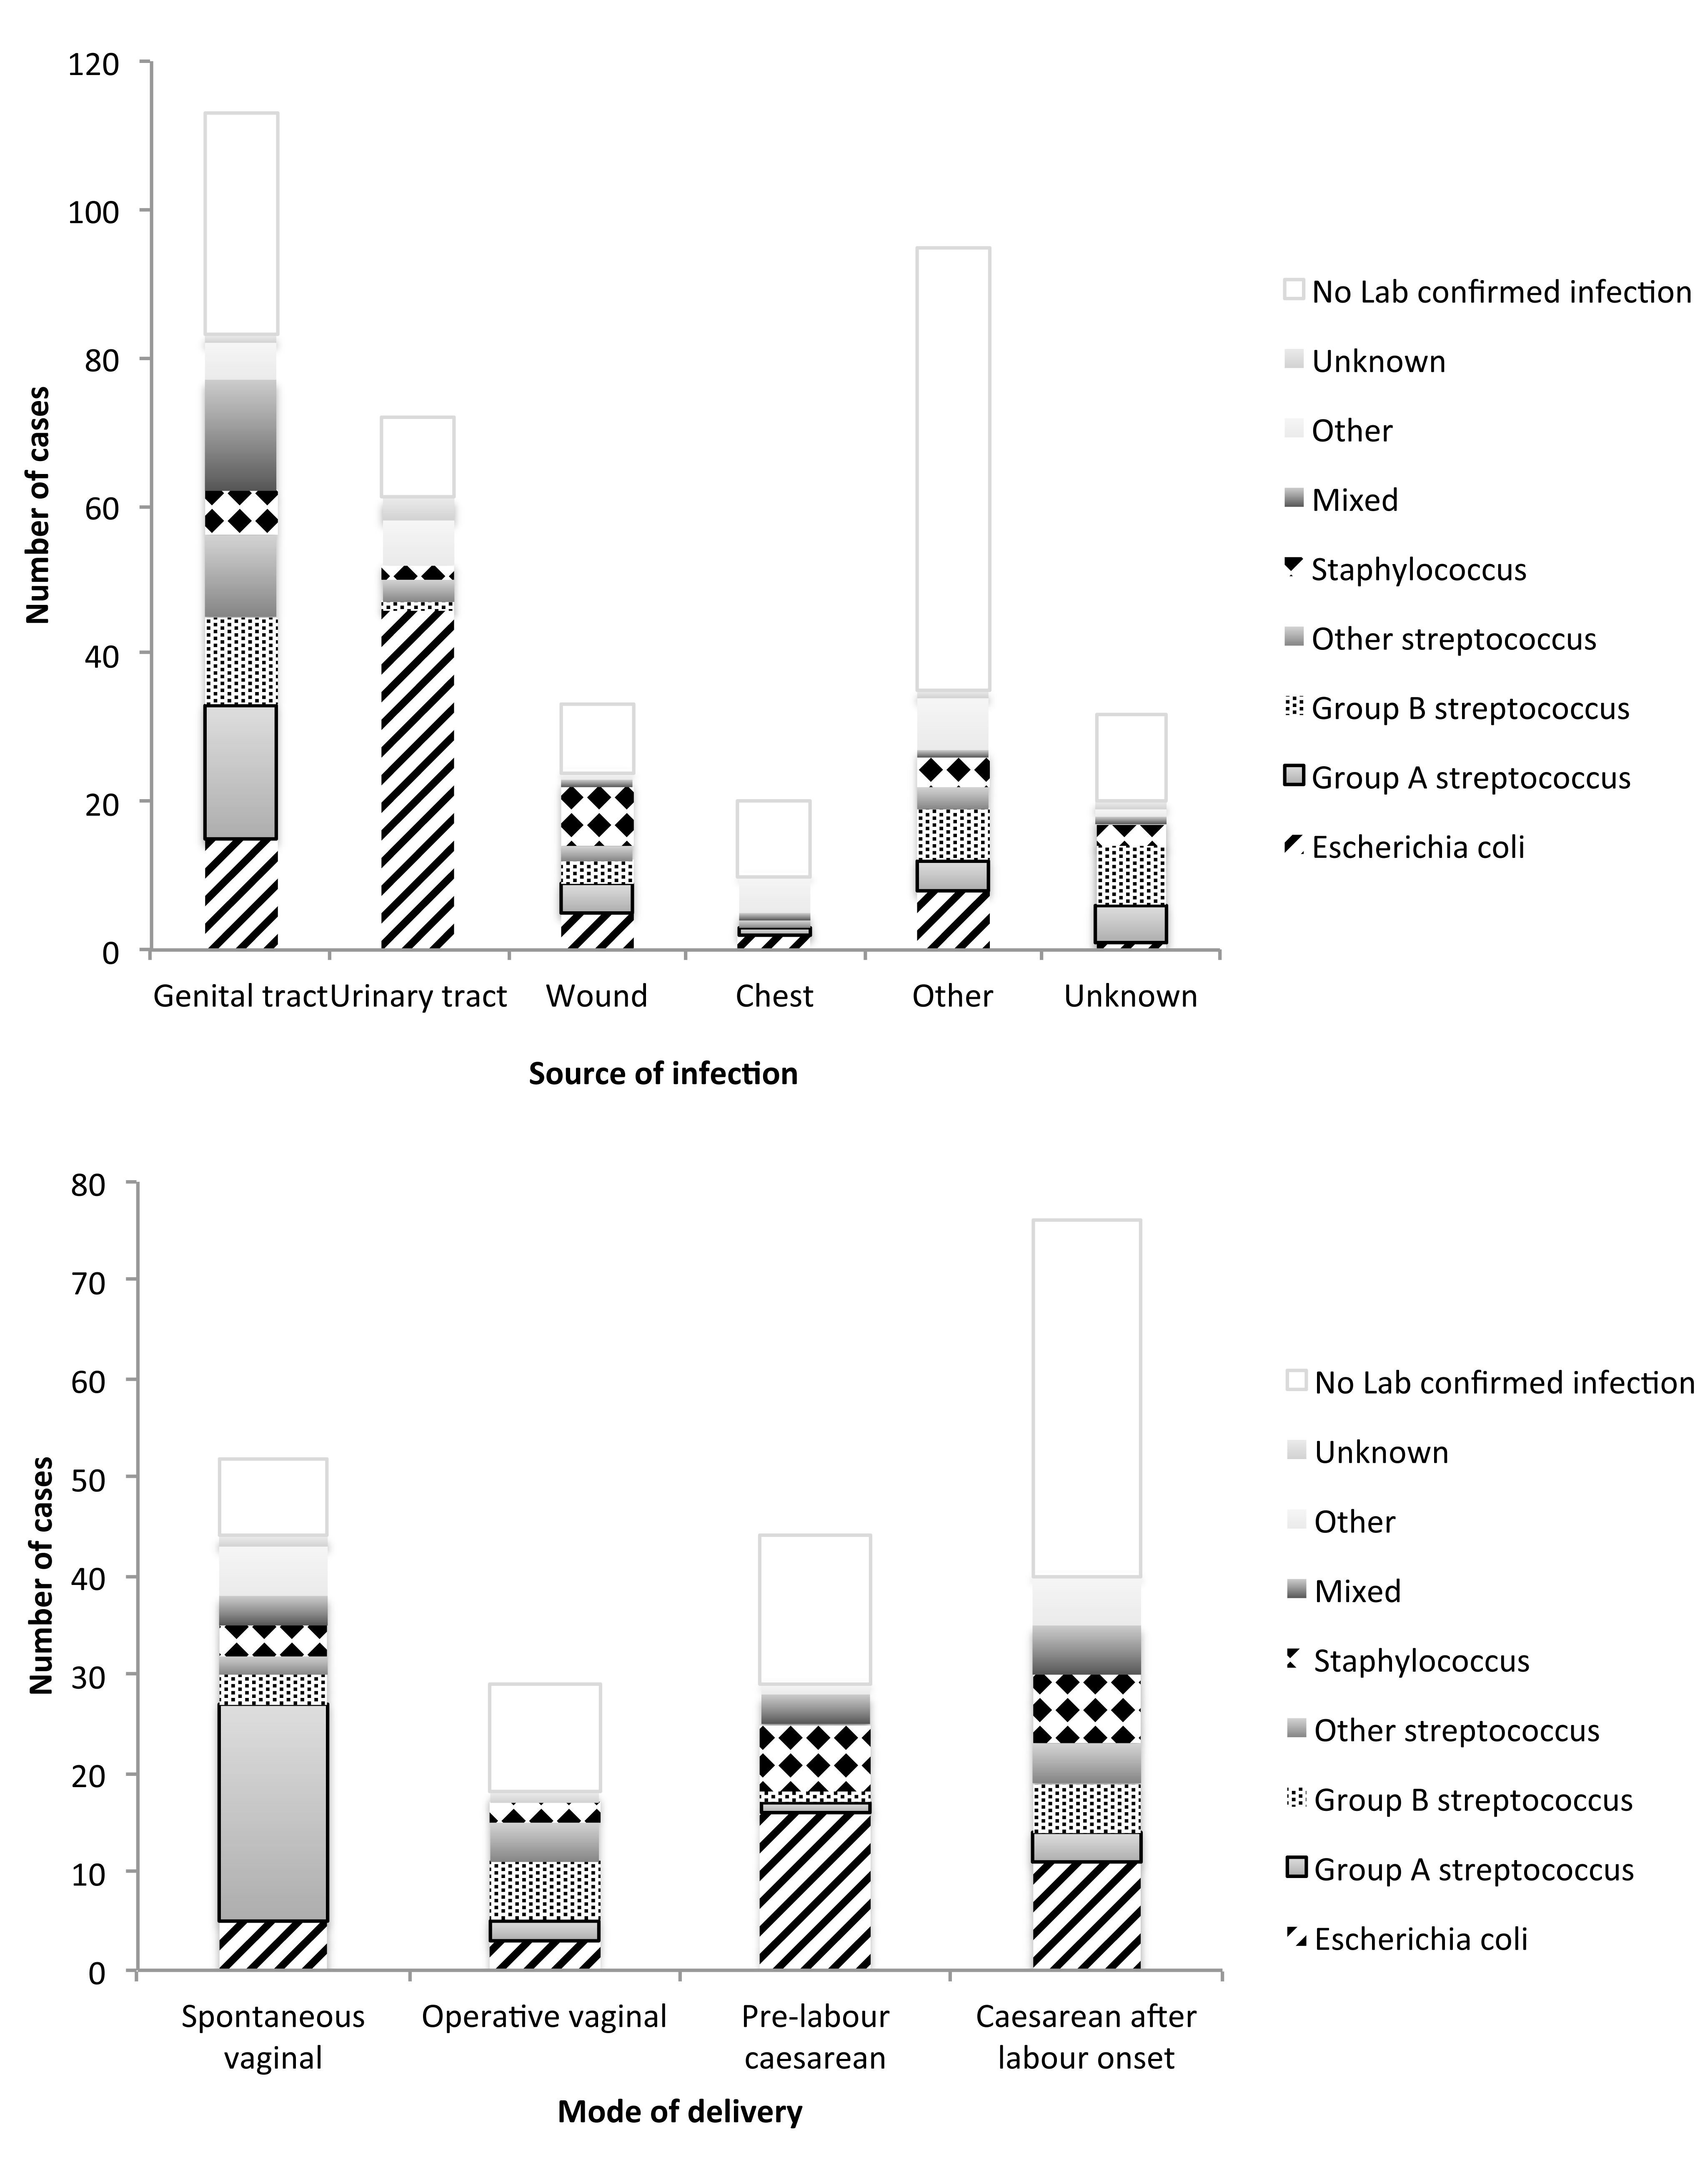 Distribution of causative organisms according to source of infection and mode of delivery.